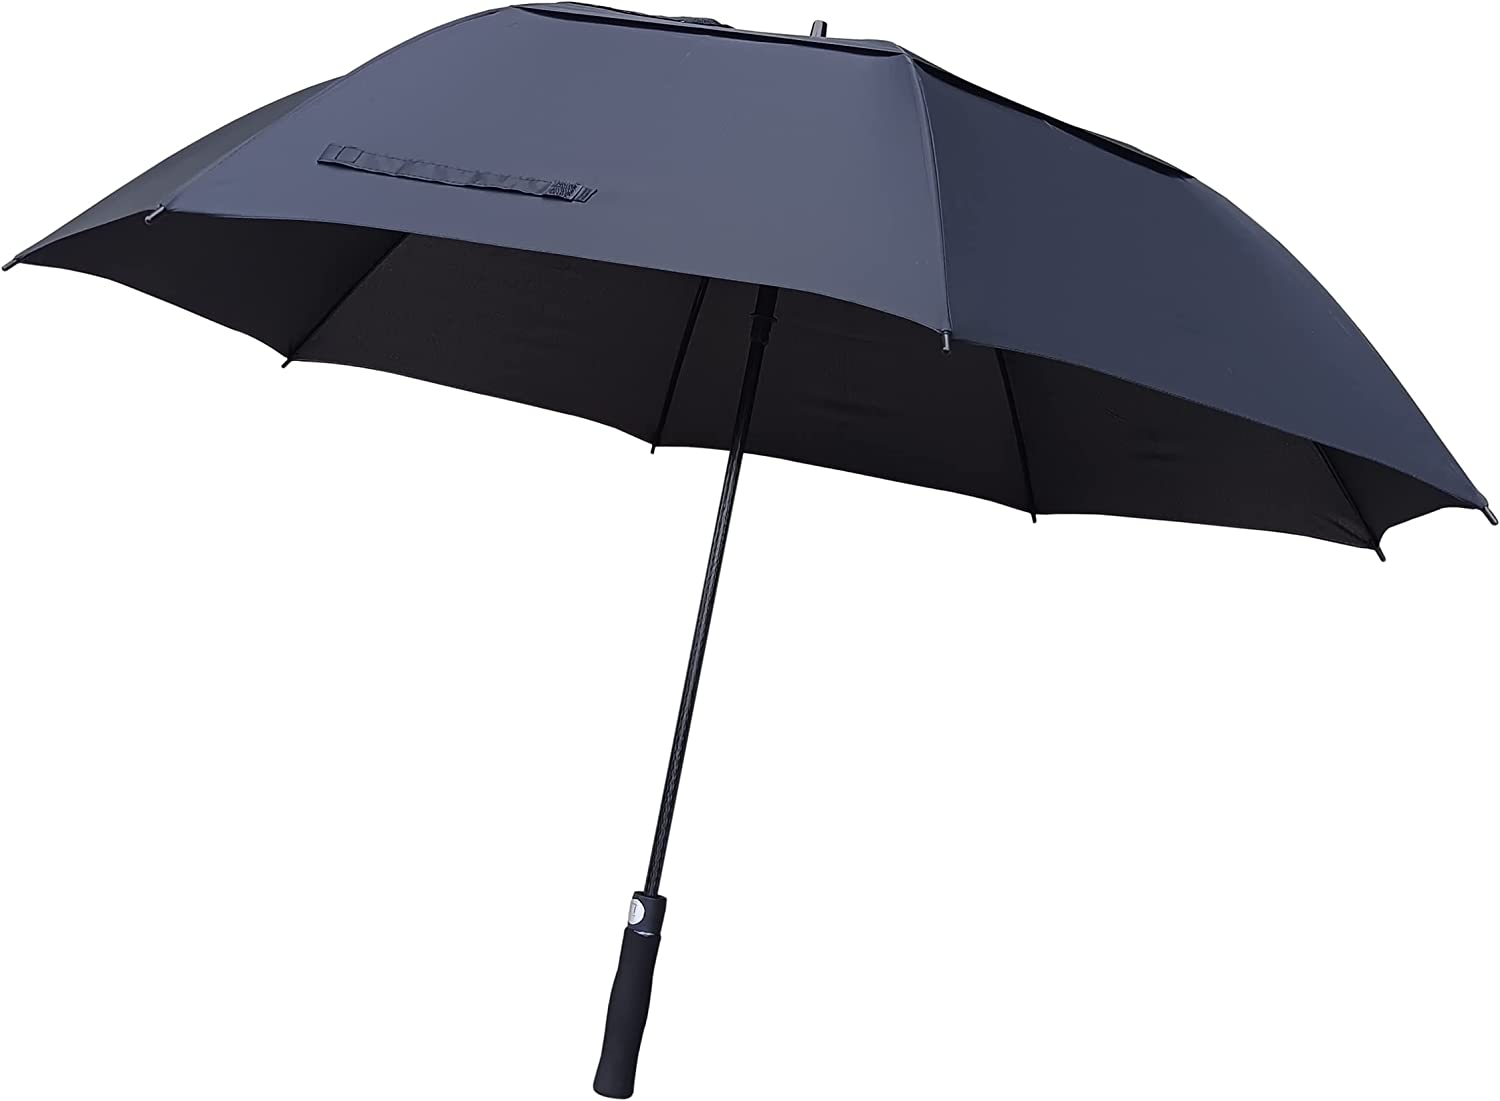 New Free Shipping 62 New product Inch Extra Large Golf Open Ov Automatic Umbrella